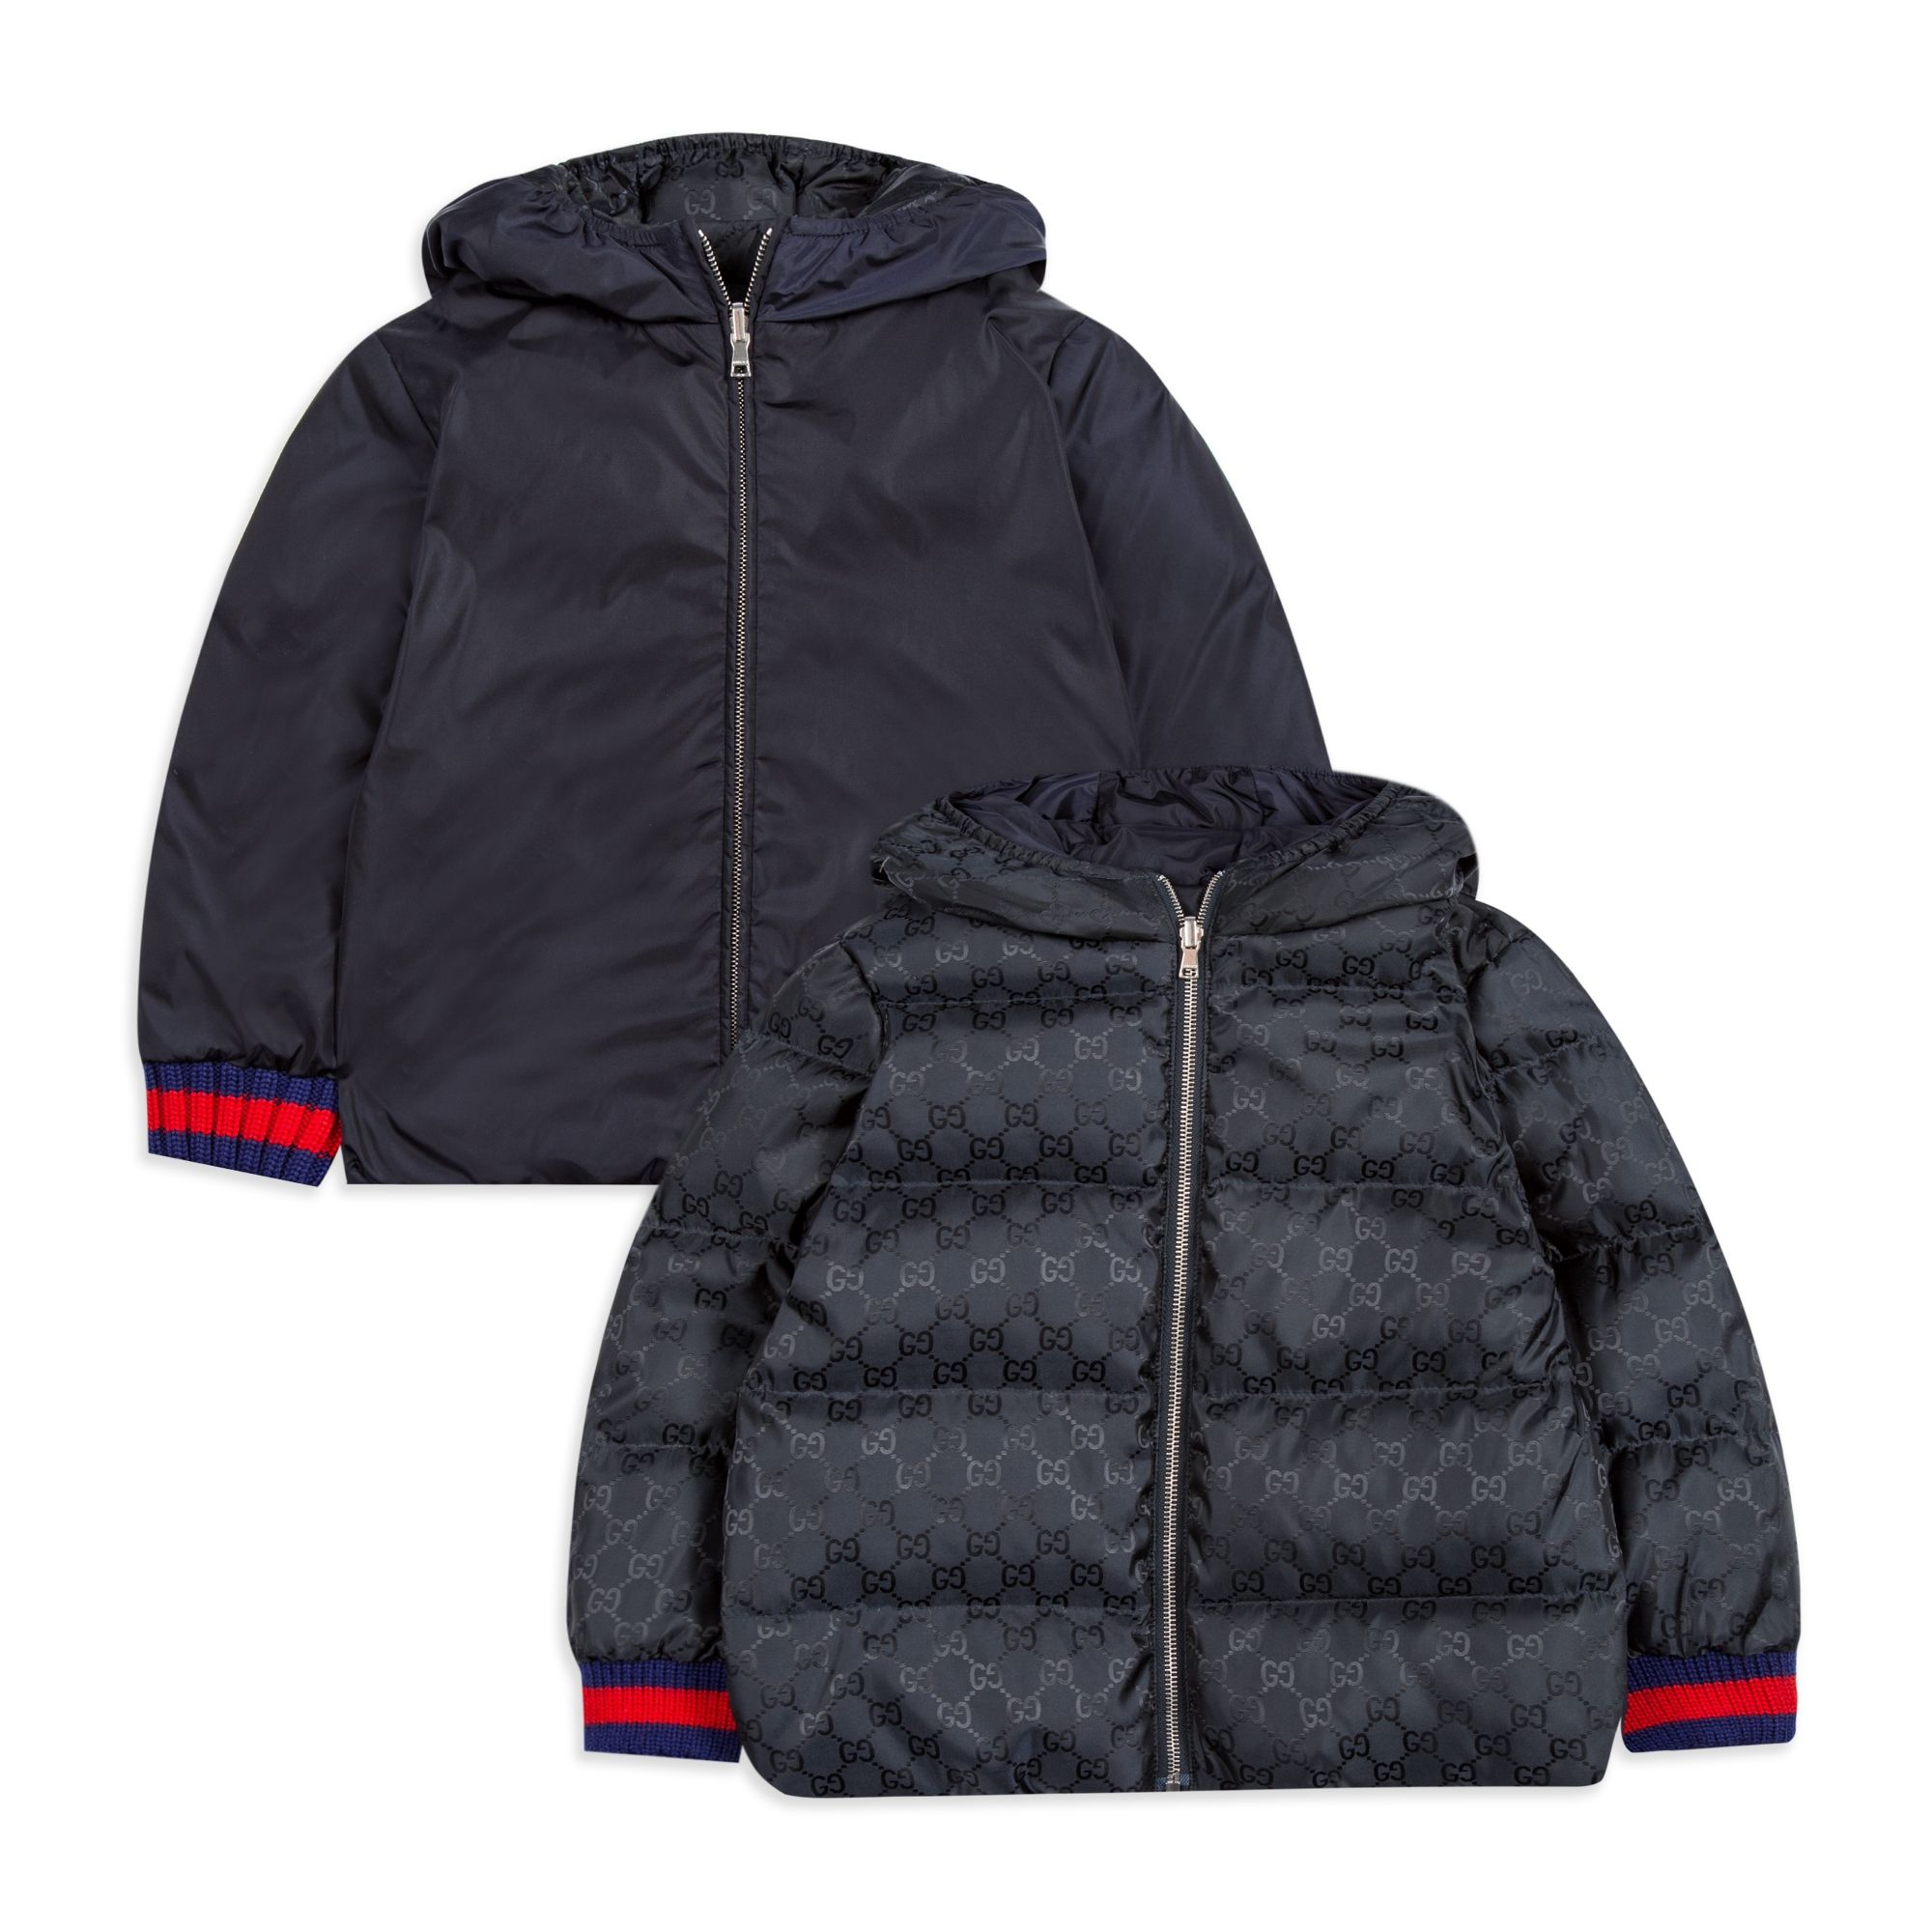 502e1801a7b GUCCI Baby Boys Reversible Down Jacket - Navy Baby hooded jacket • Soft  woven fabric •